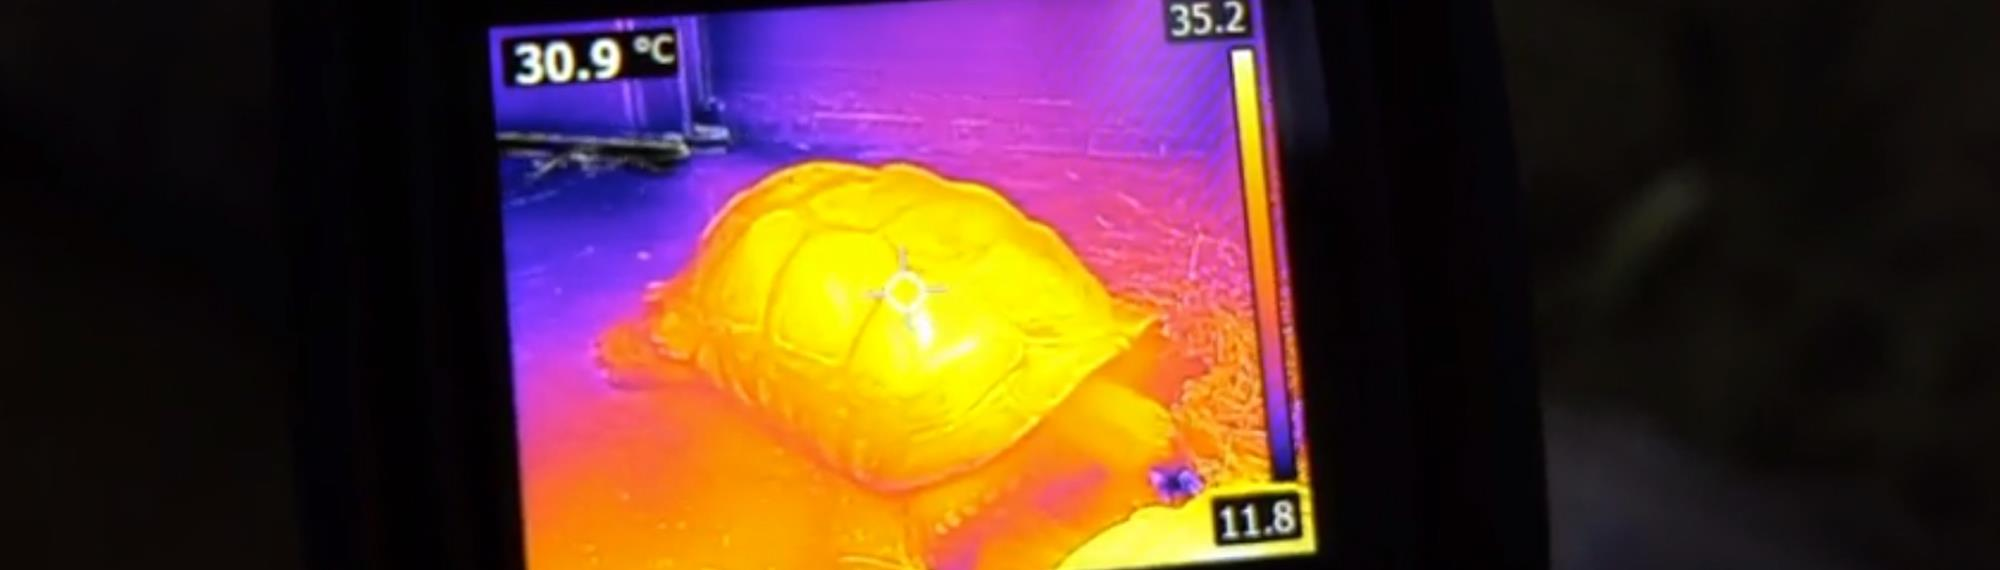 Thermal image of Tortoise at Melbourne Zoo reptile house.